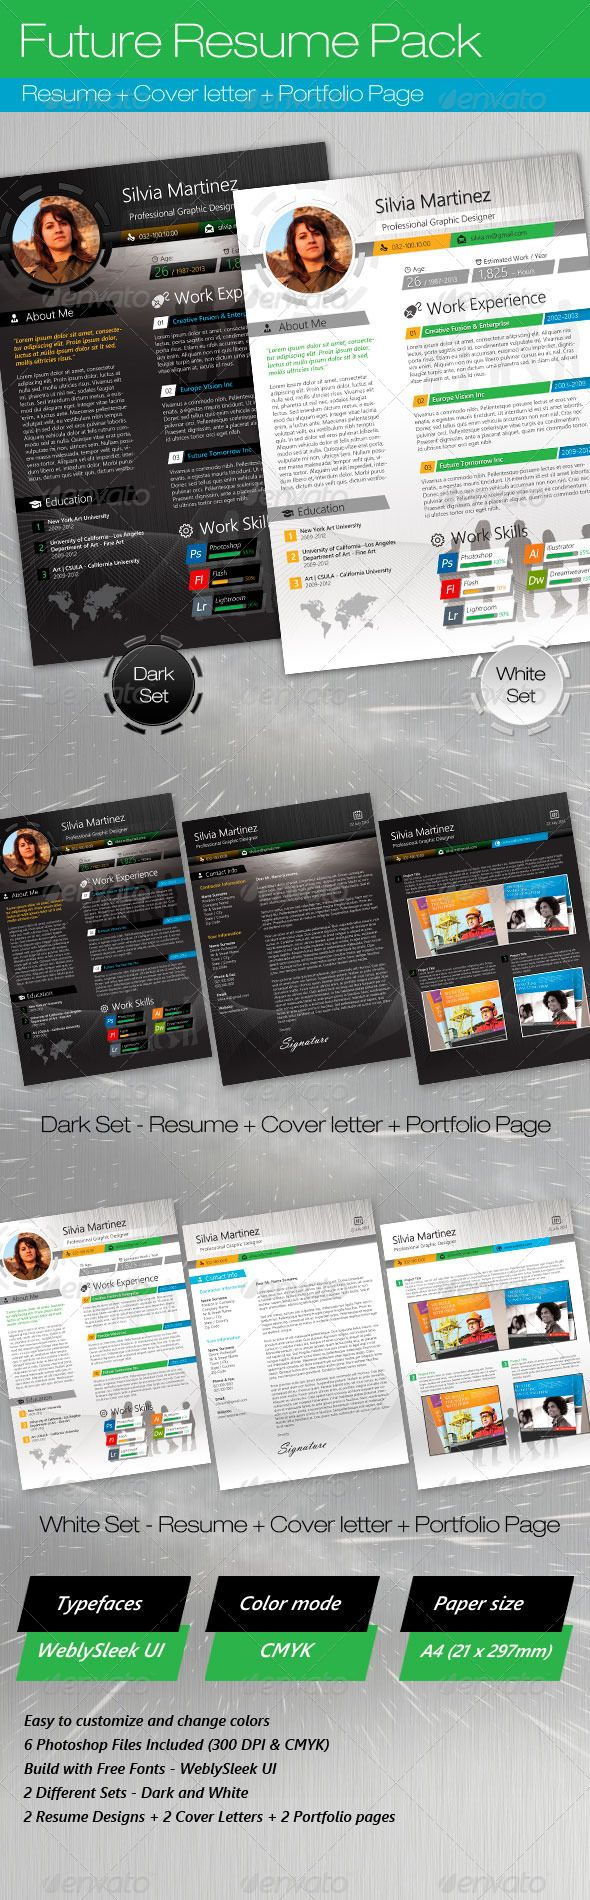 Future Resume Pack (2 color themes) | Color themes, Future and ...